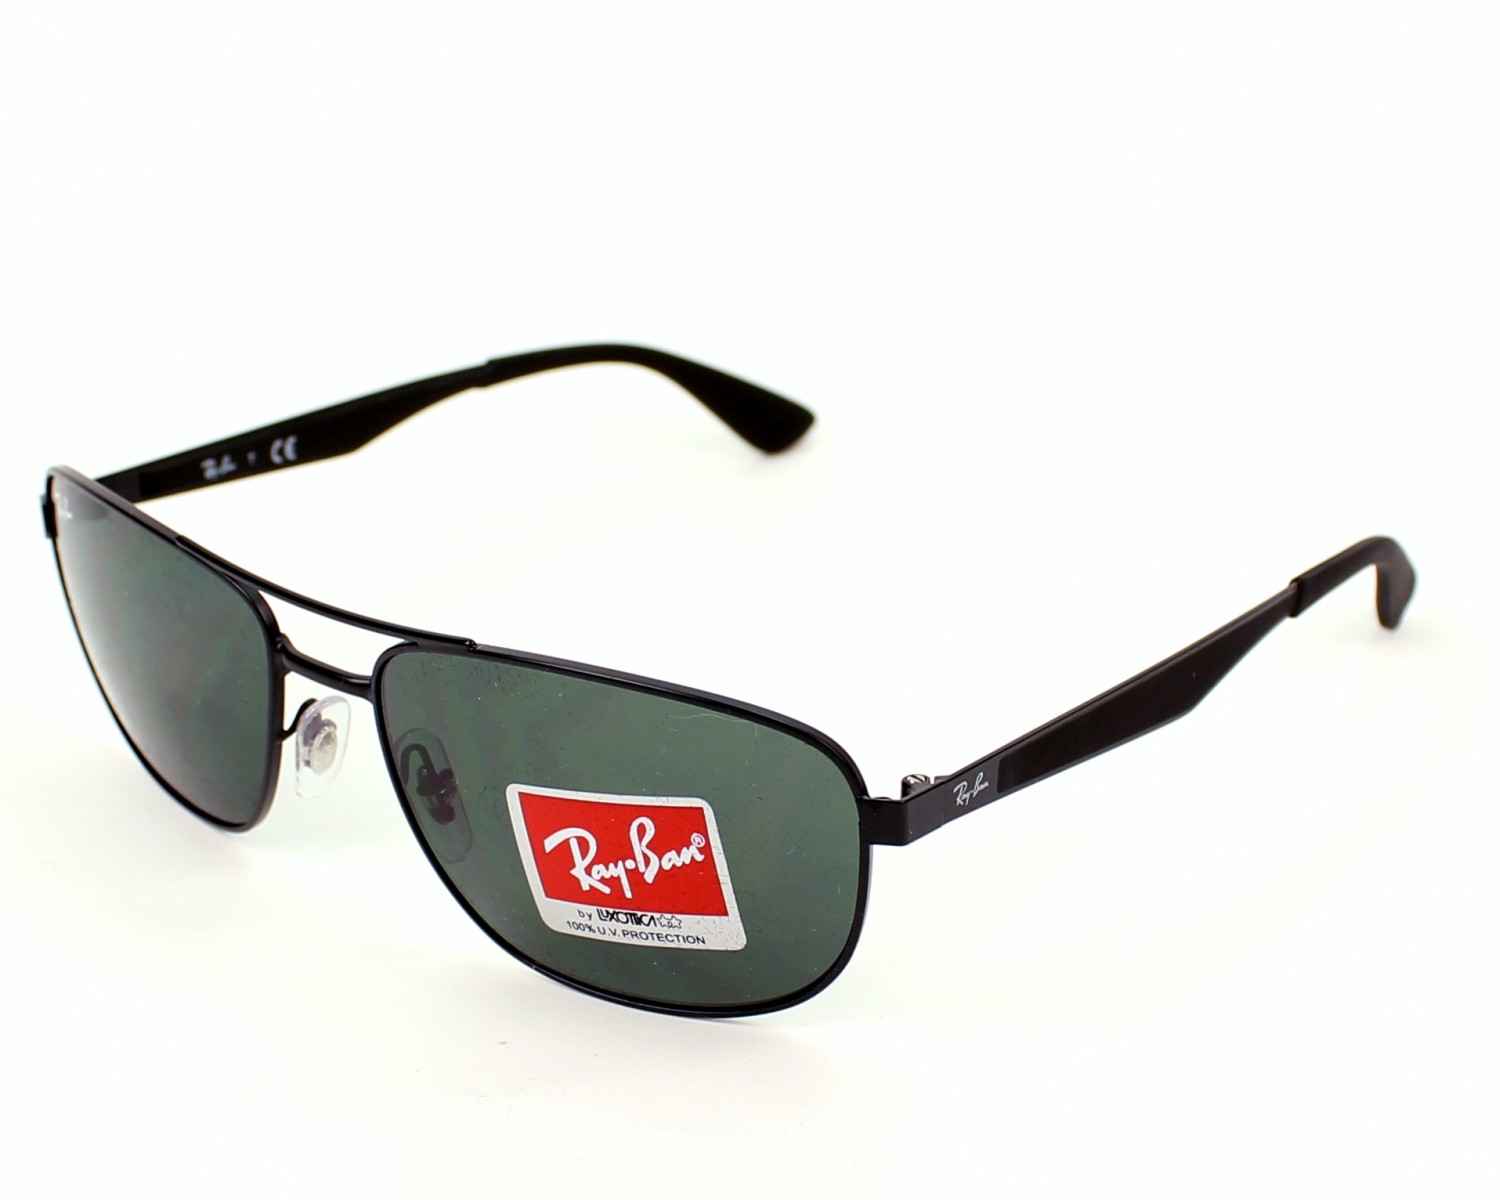 47c2a2bb021 Sunglasses Ray-Ban RB-3528 006 71 61-17 Black profile view